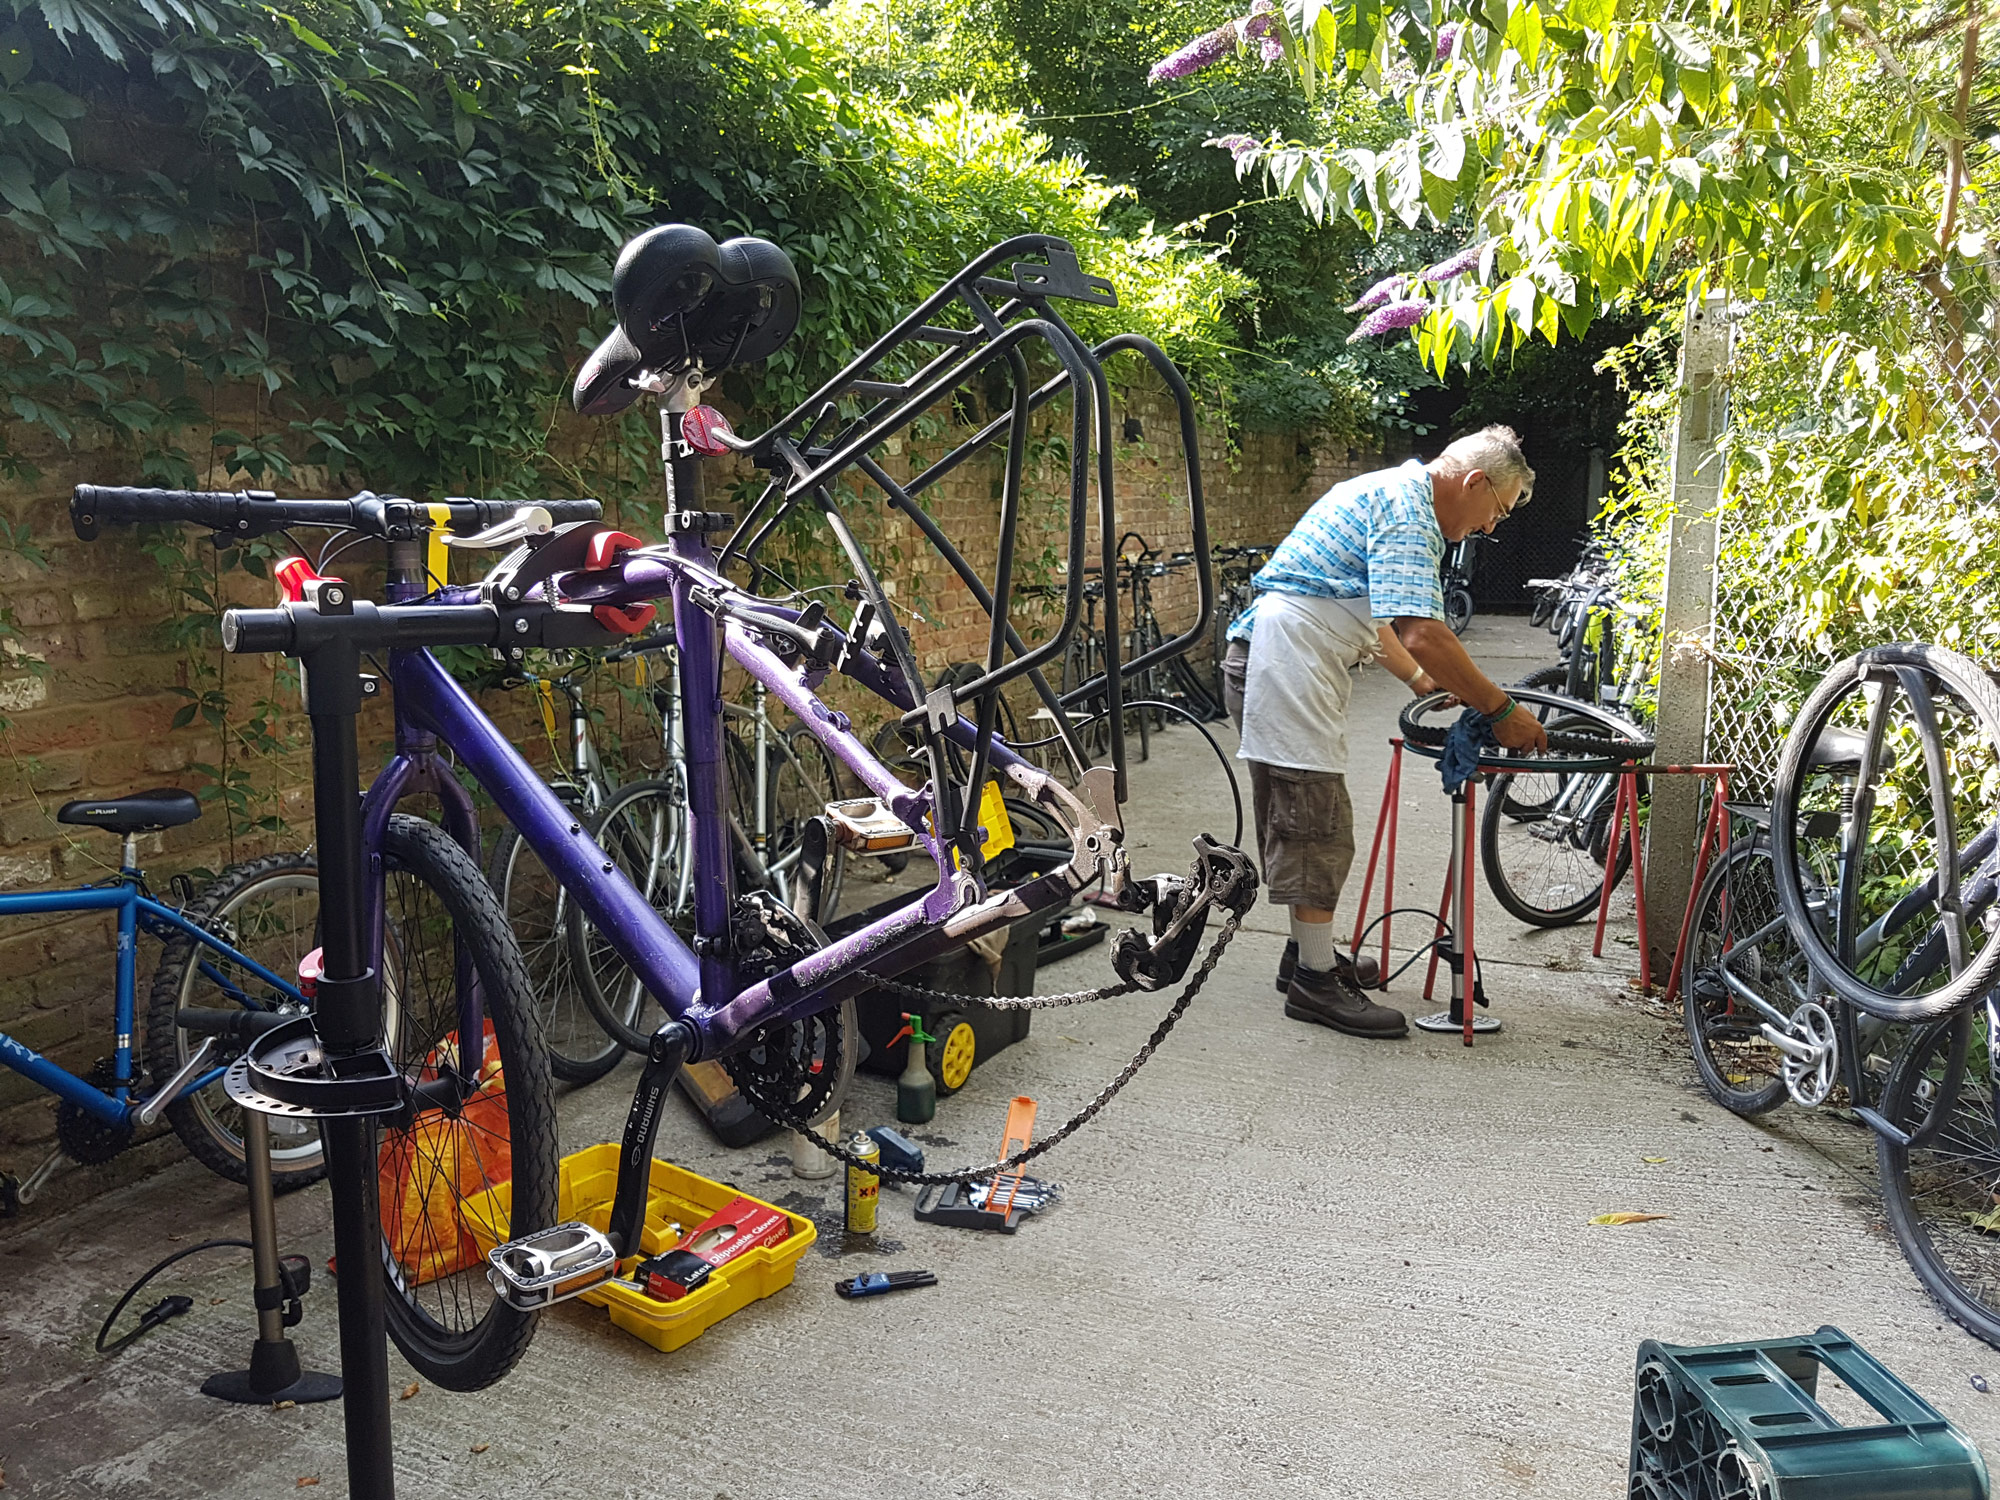 0008_Bike-Mechanics-20180705_170424.jpg